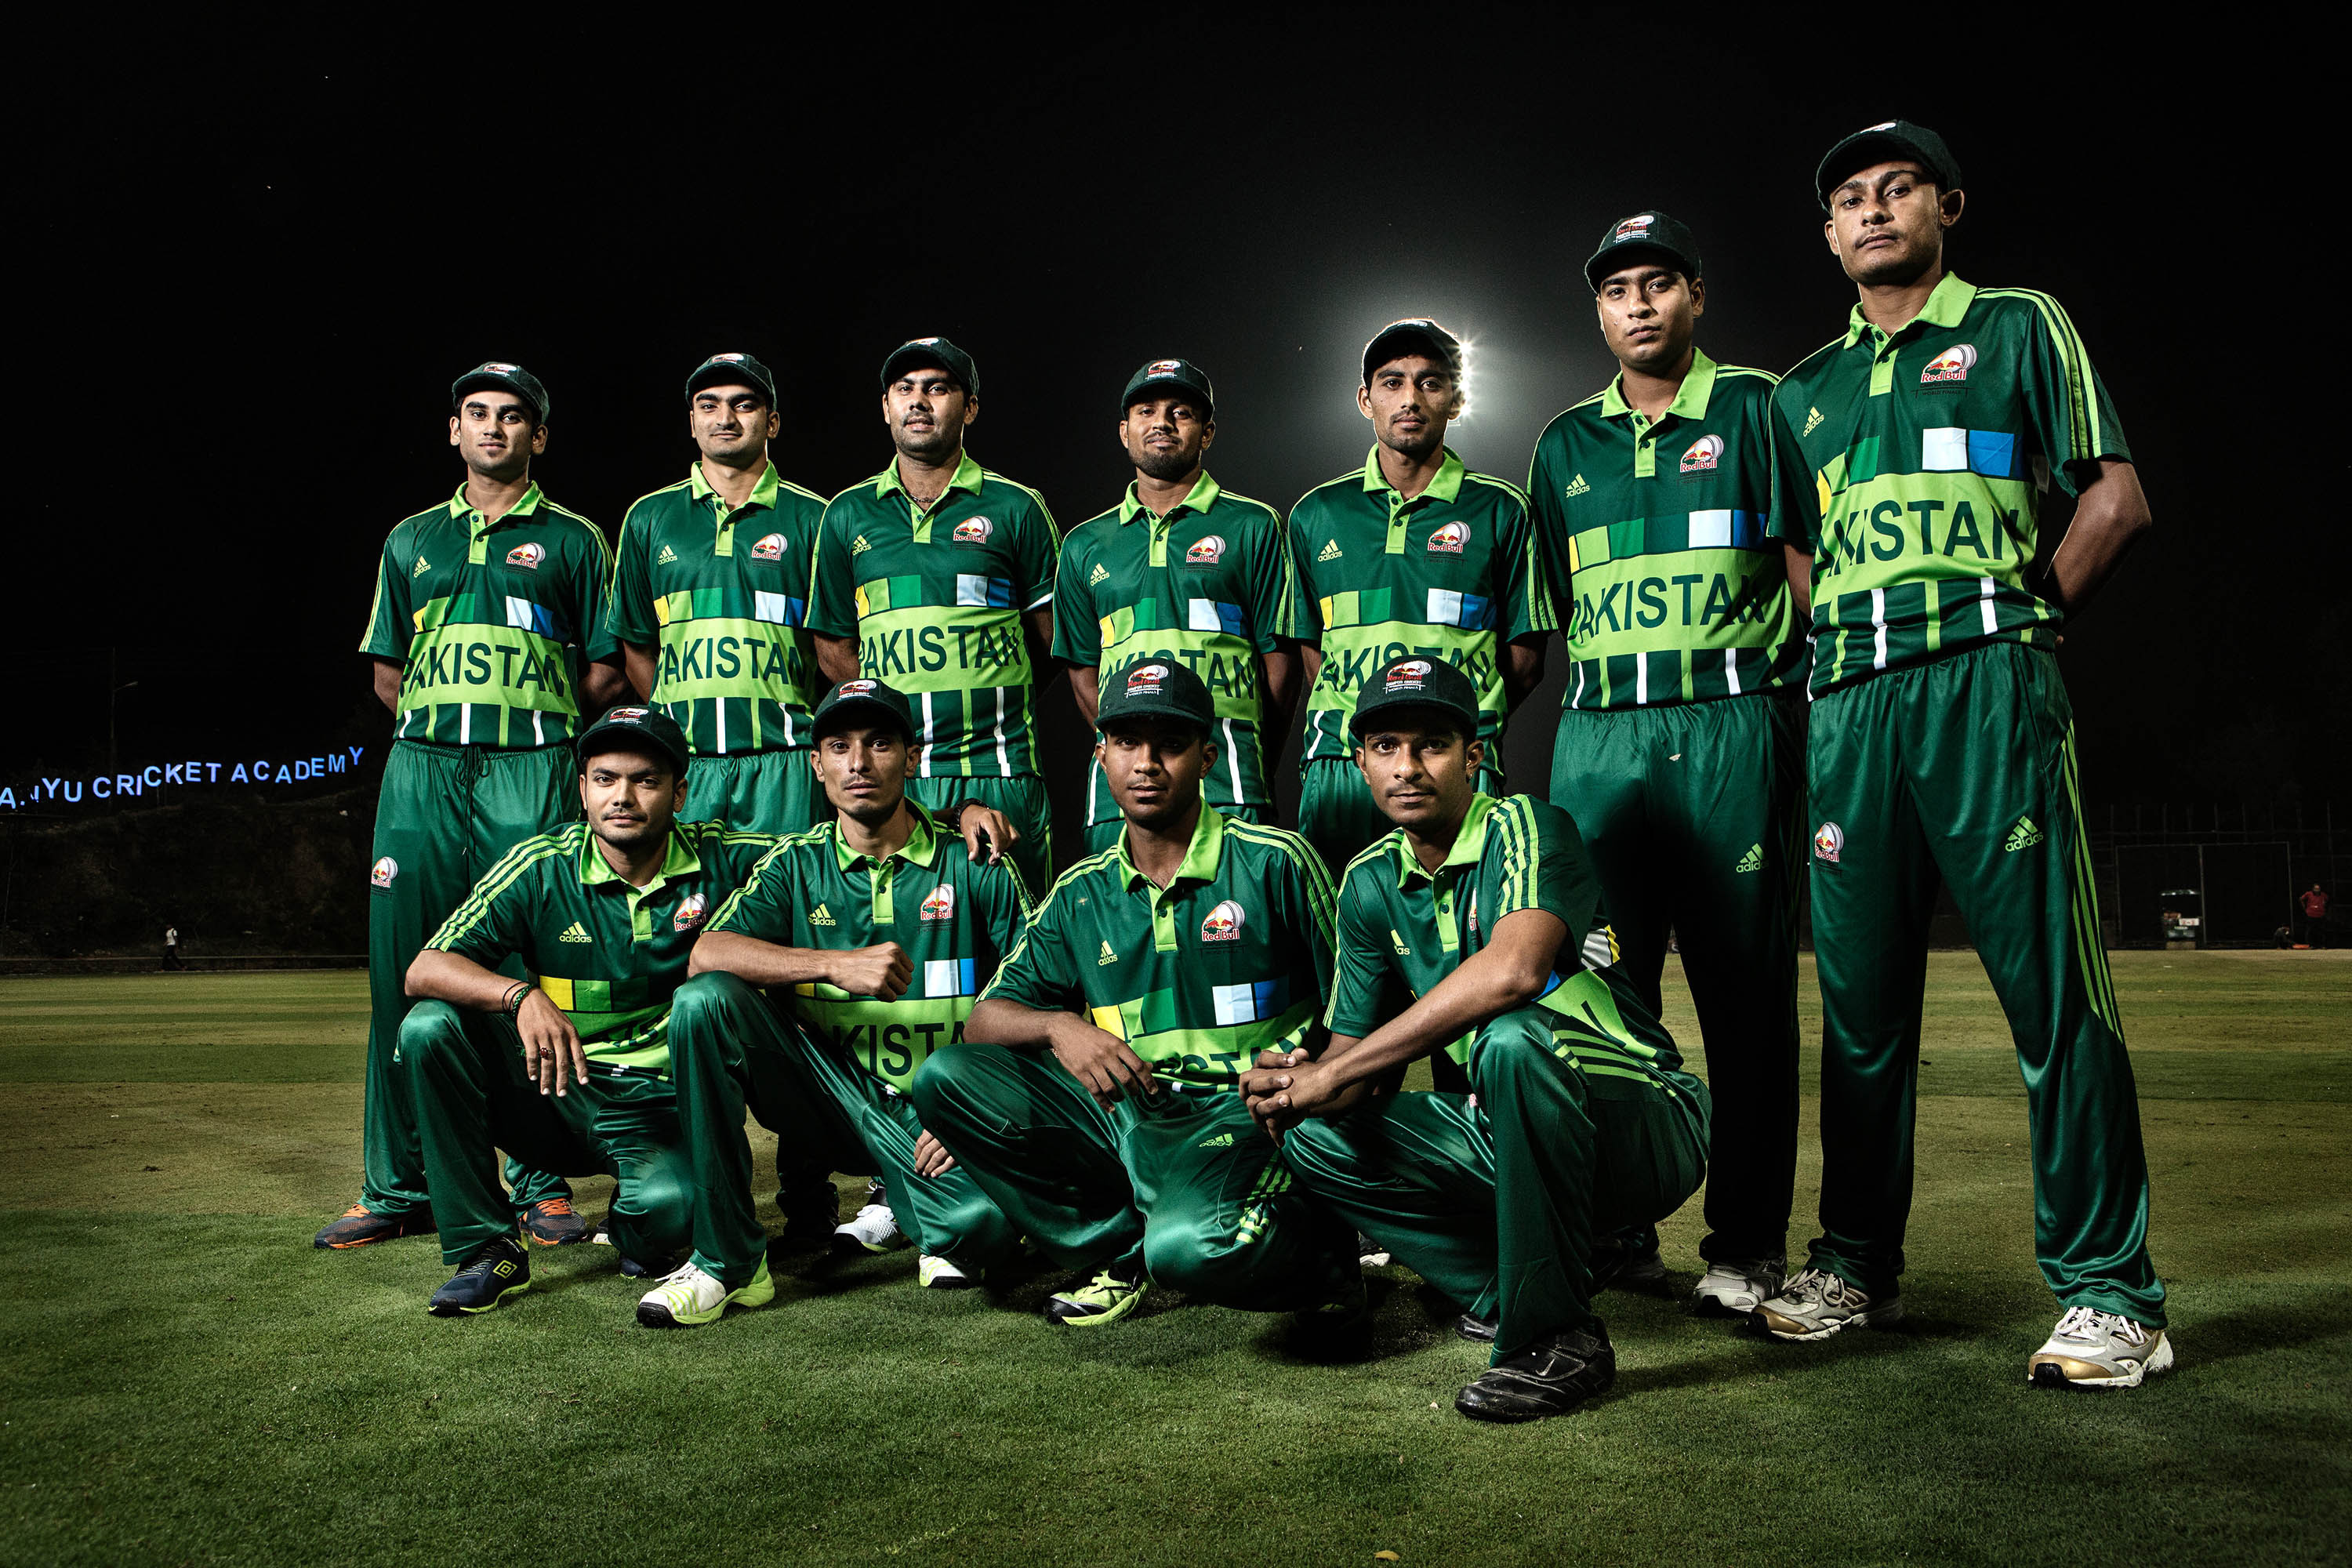 Team Pakistan posing for a portrait at Red Bull Campus Cricket in Dehradun, India on 19 October 2015